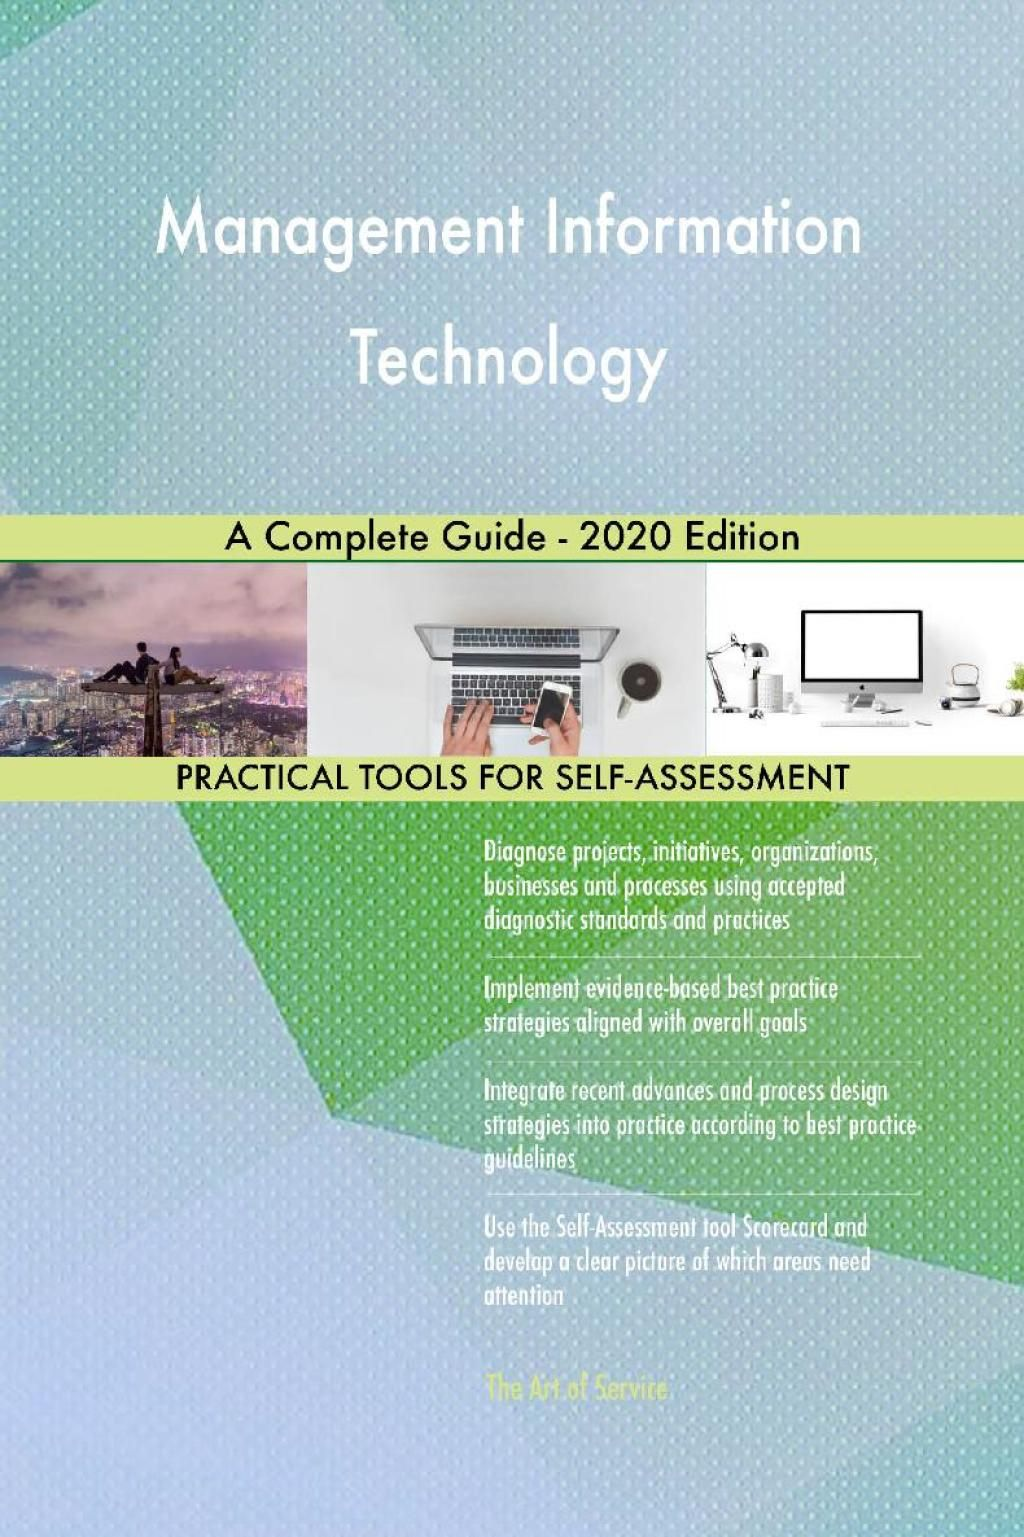 Management Information Technology A Complete Guide 2020 Edition Ebook With Images Information Technology Complete Guide Management